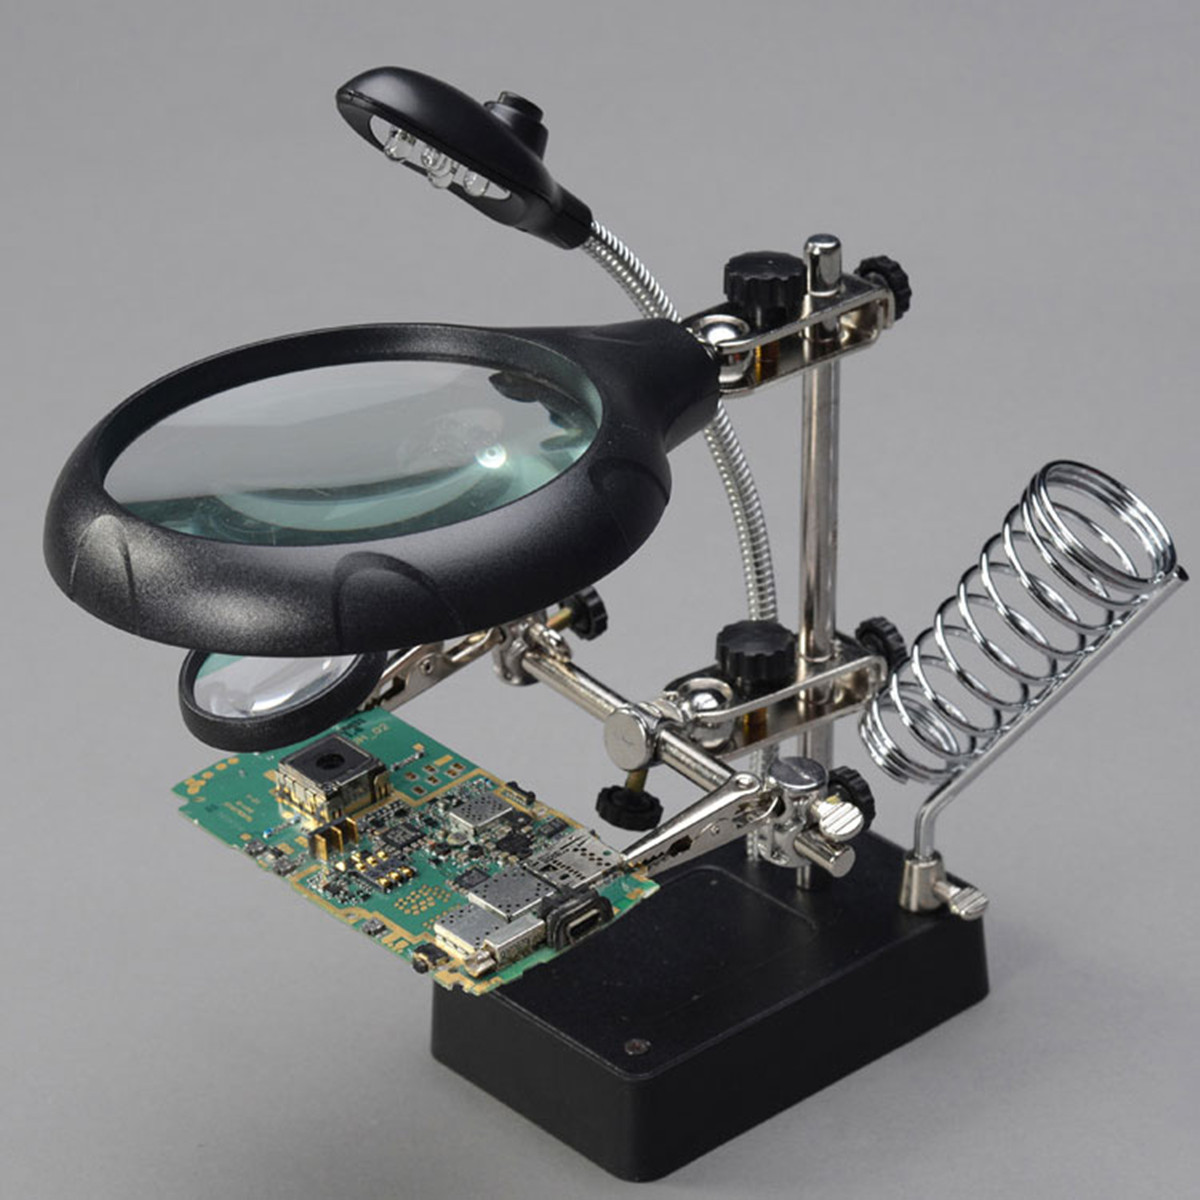 Soldering Iron Stand Clamp Holder Magnifying Lens Magnifier with 5 LED Light